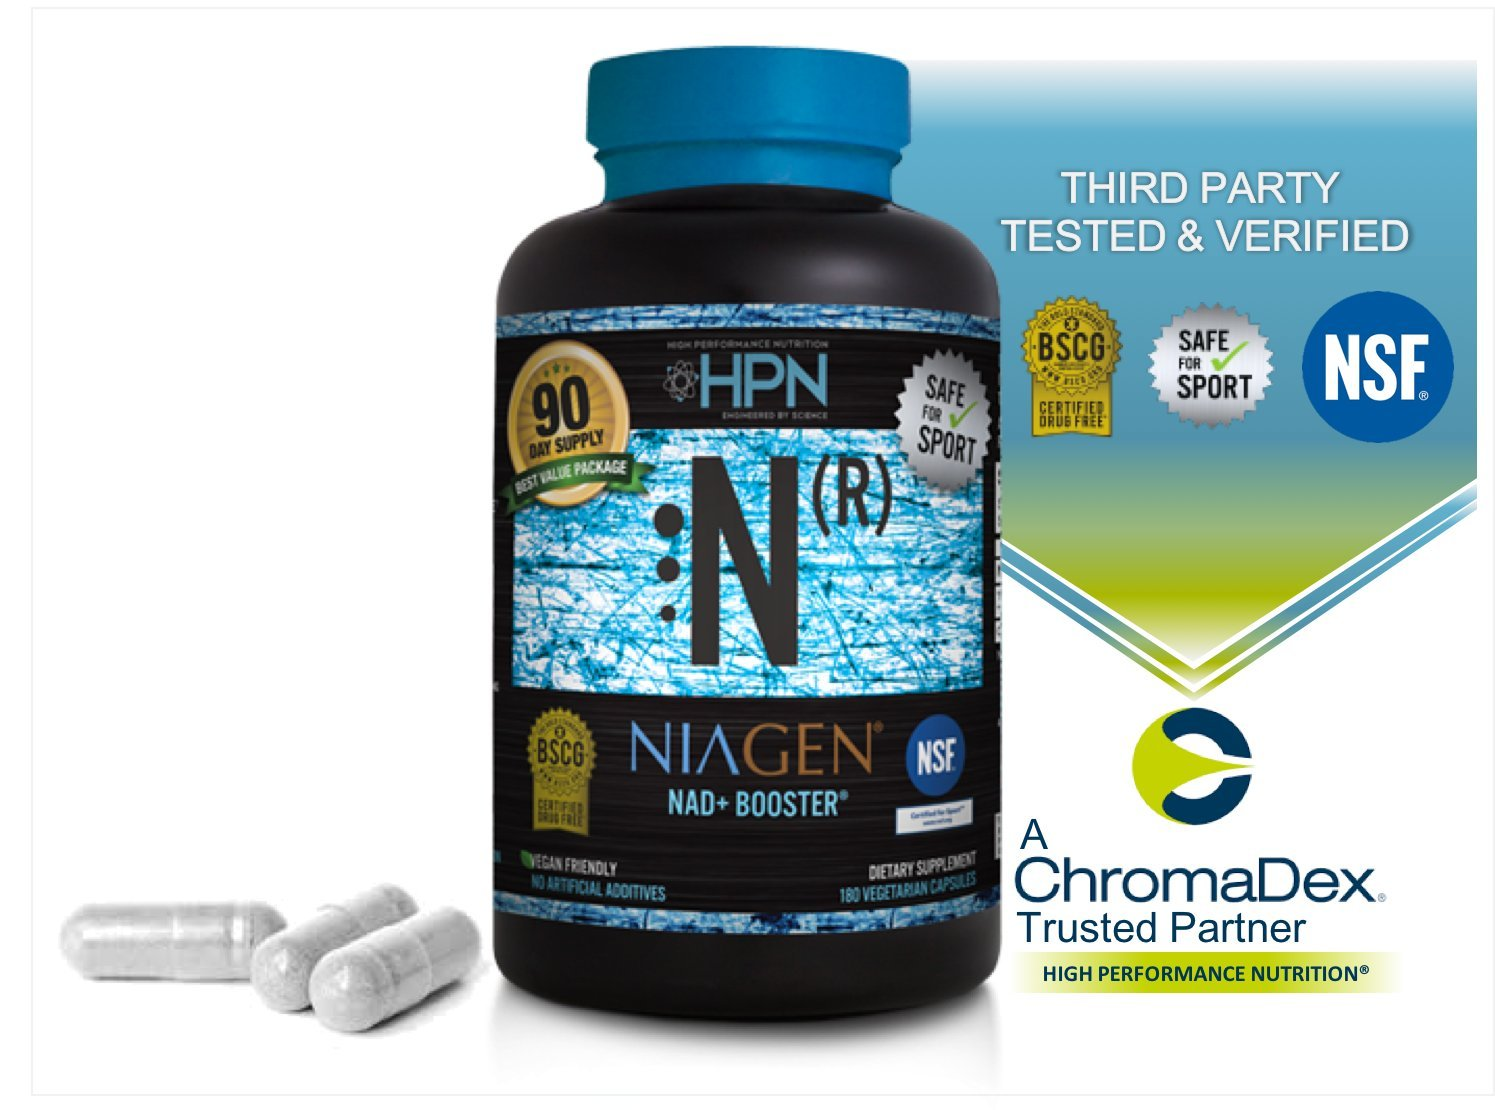 HPN Nicotinamide Riboside Metabolic Repair - 180 capsule VALUE Size - FREE 2 Day Shipping - Patented NAD+ Booster with Niagen (Nr) - The Original and Most Trusted Longevity Product